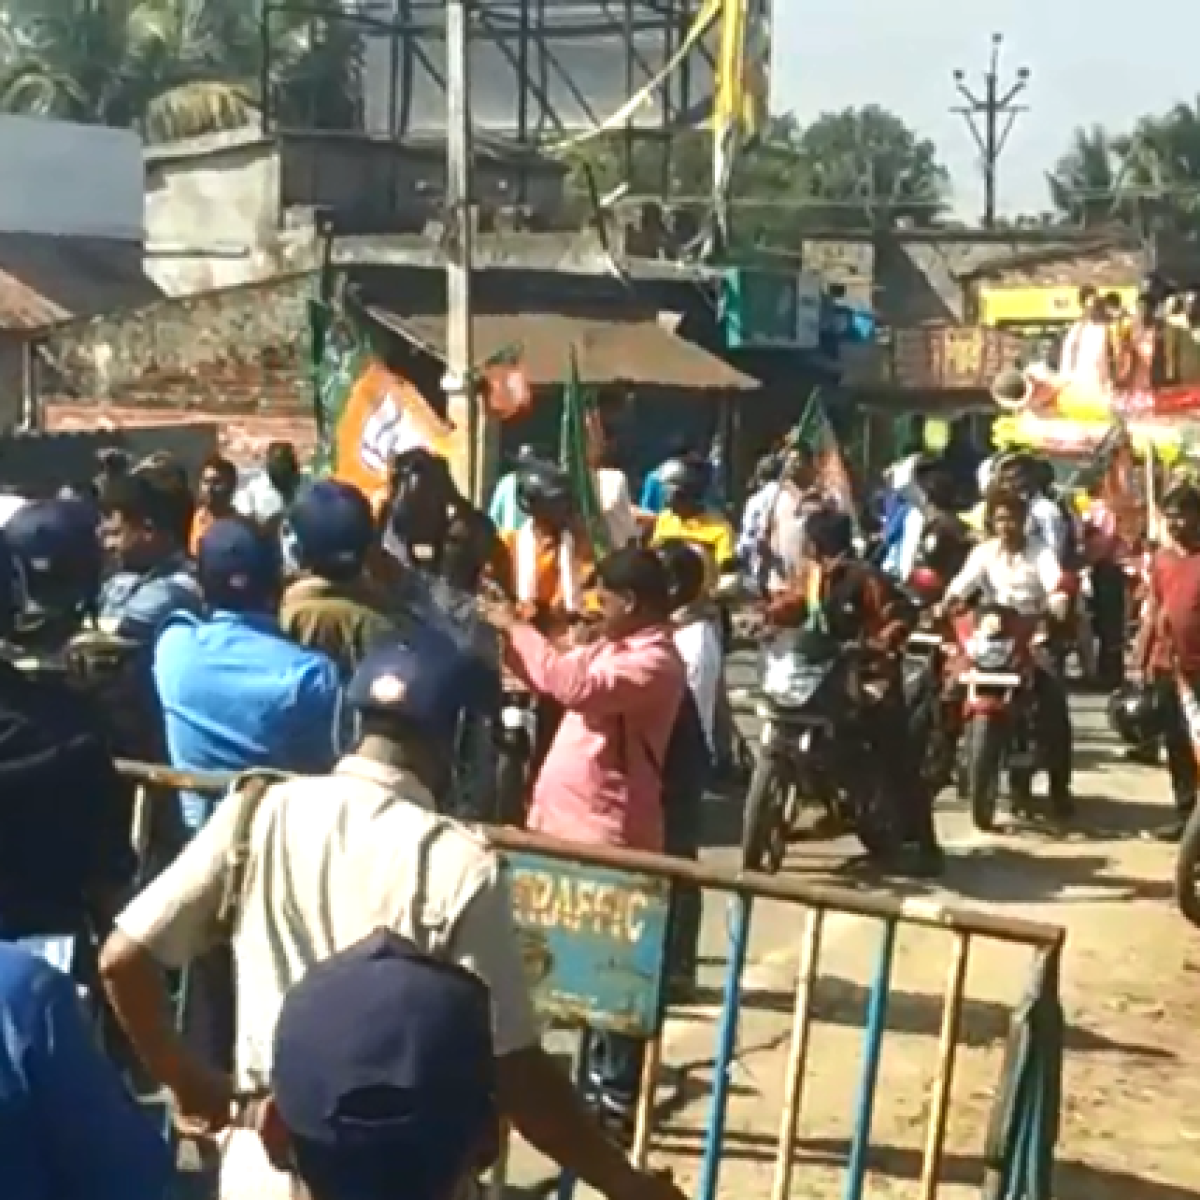 Police lathicharge, detain CAA supporters during West Bengal rally led by Dilip Ghosh